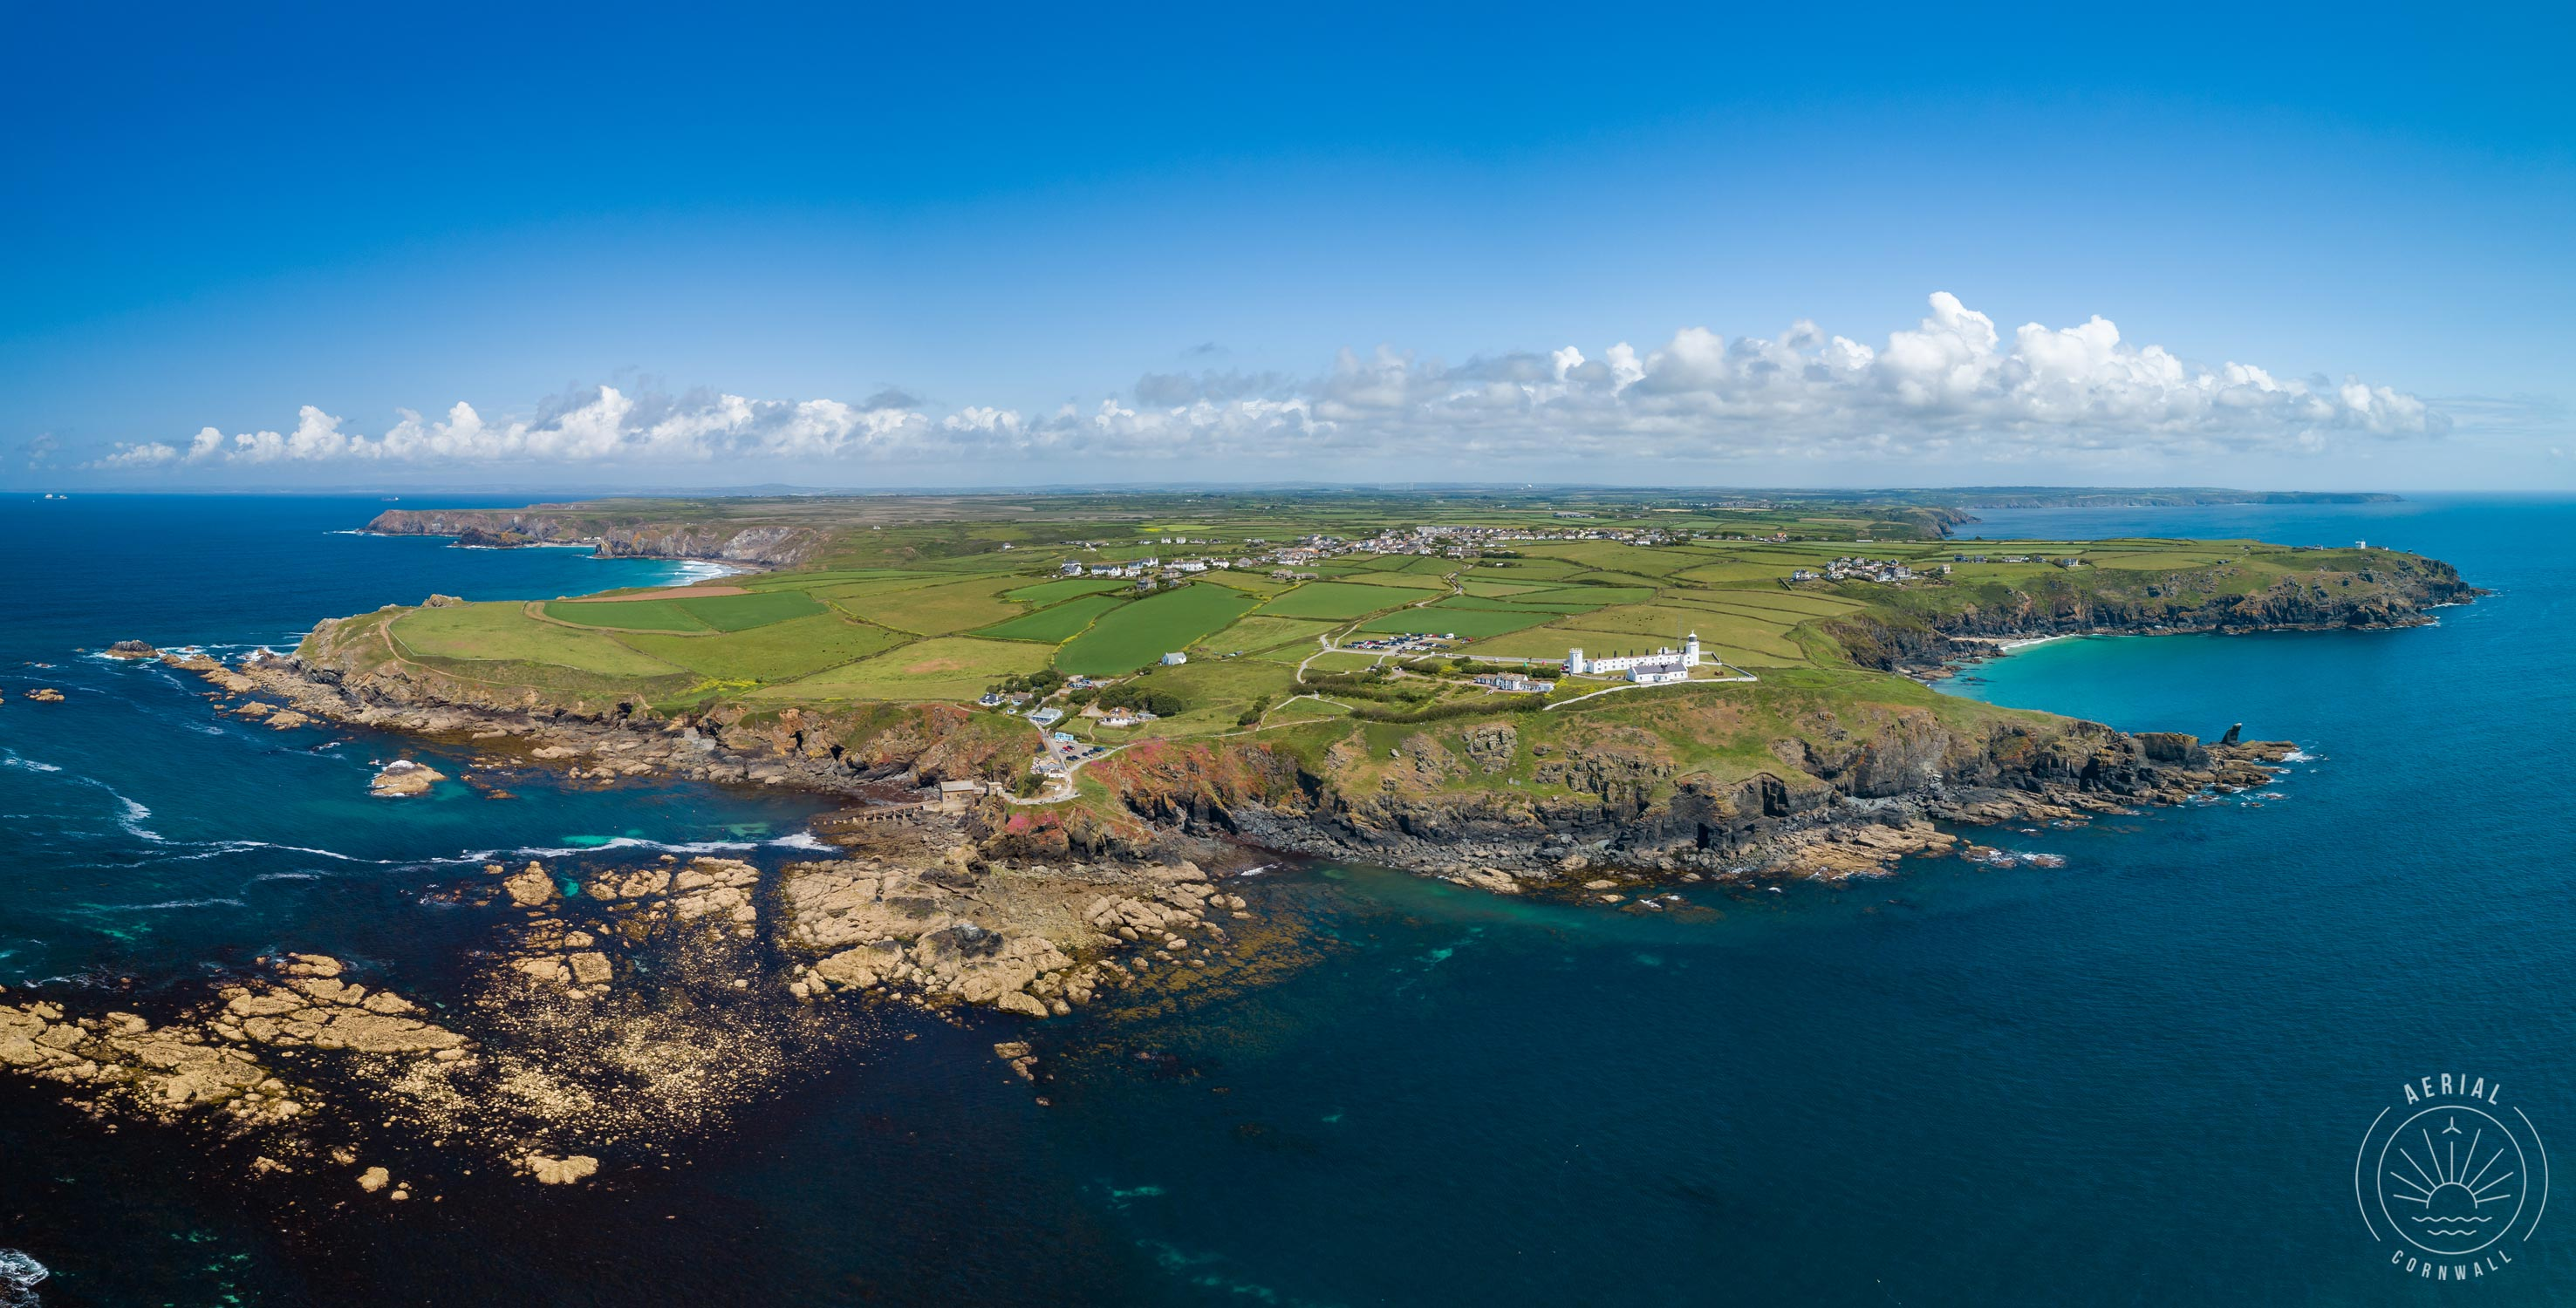 Location: Lizard Point